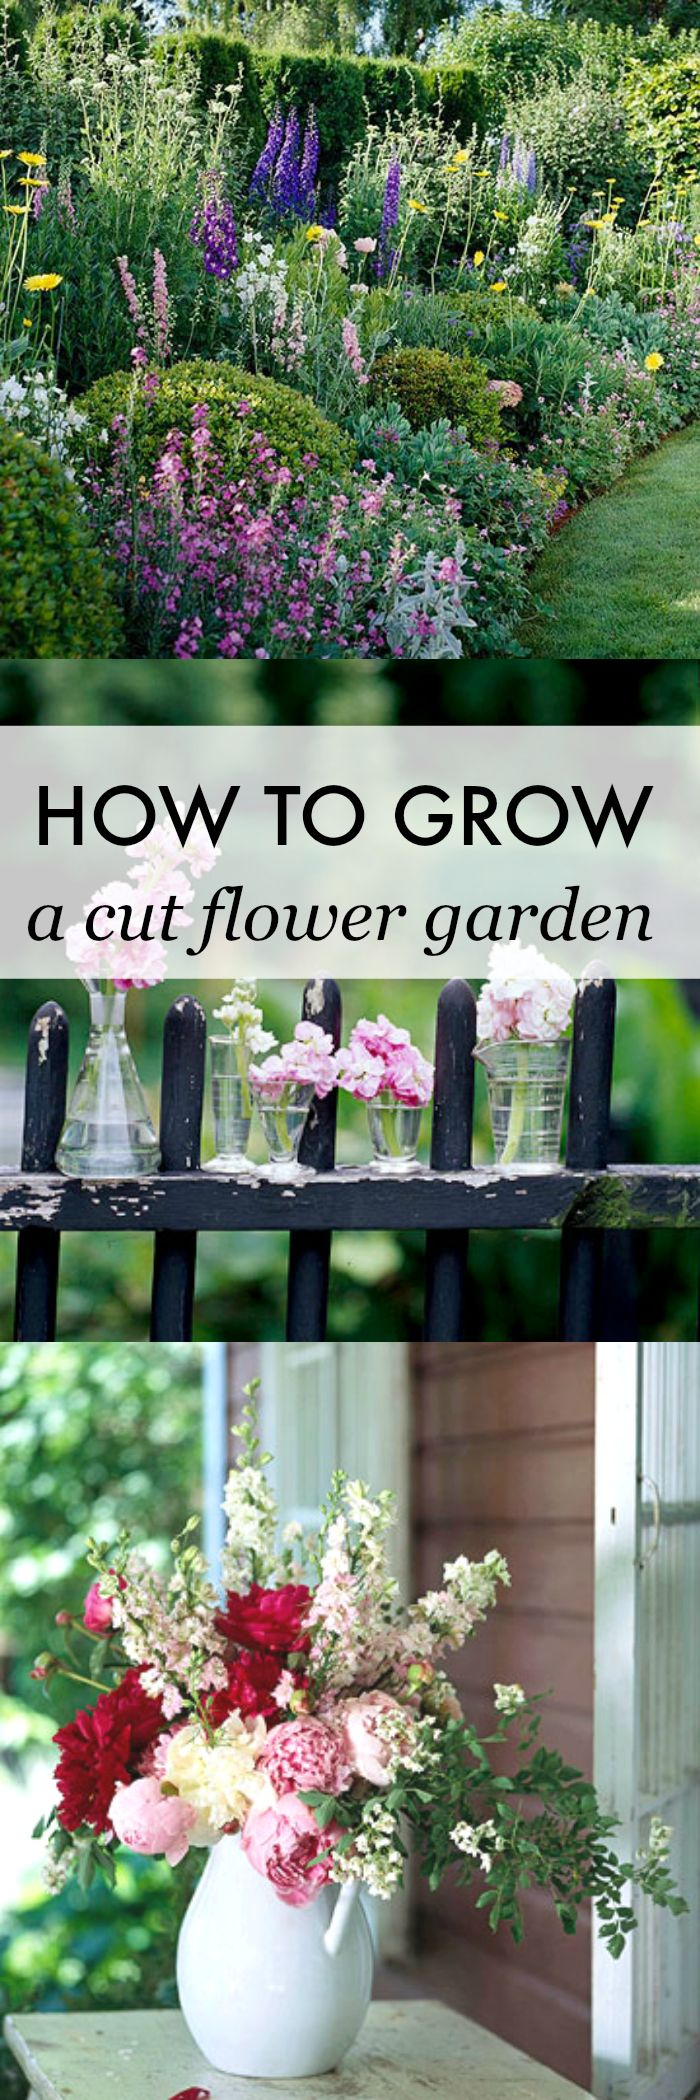 Home Flower Gardens best 20+ cut flower garden ideas on pinterest | spring plants